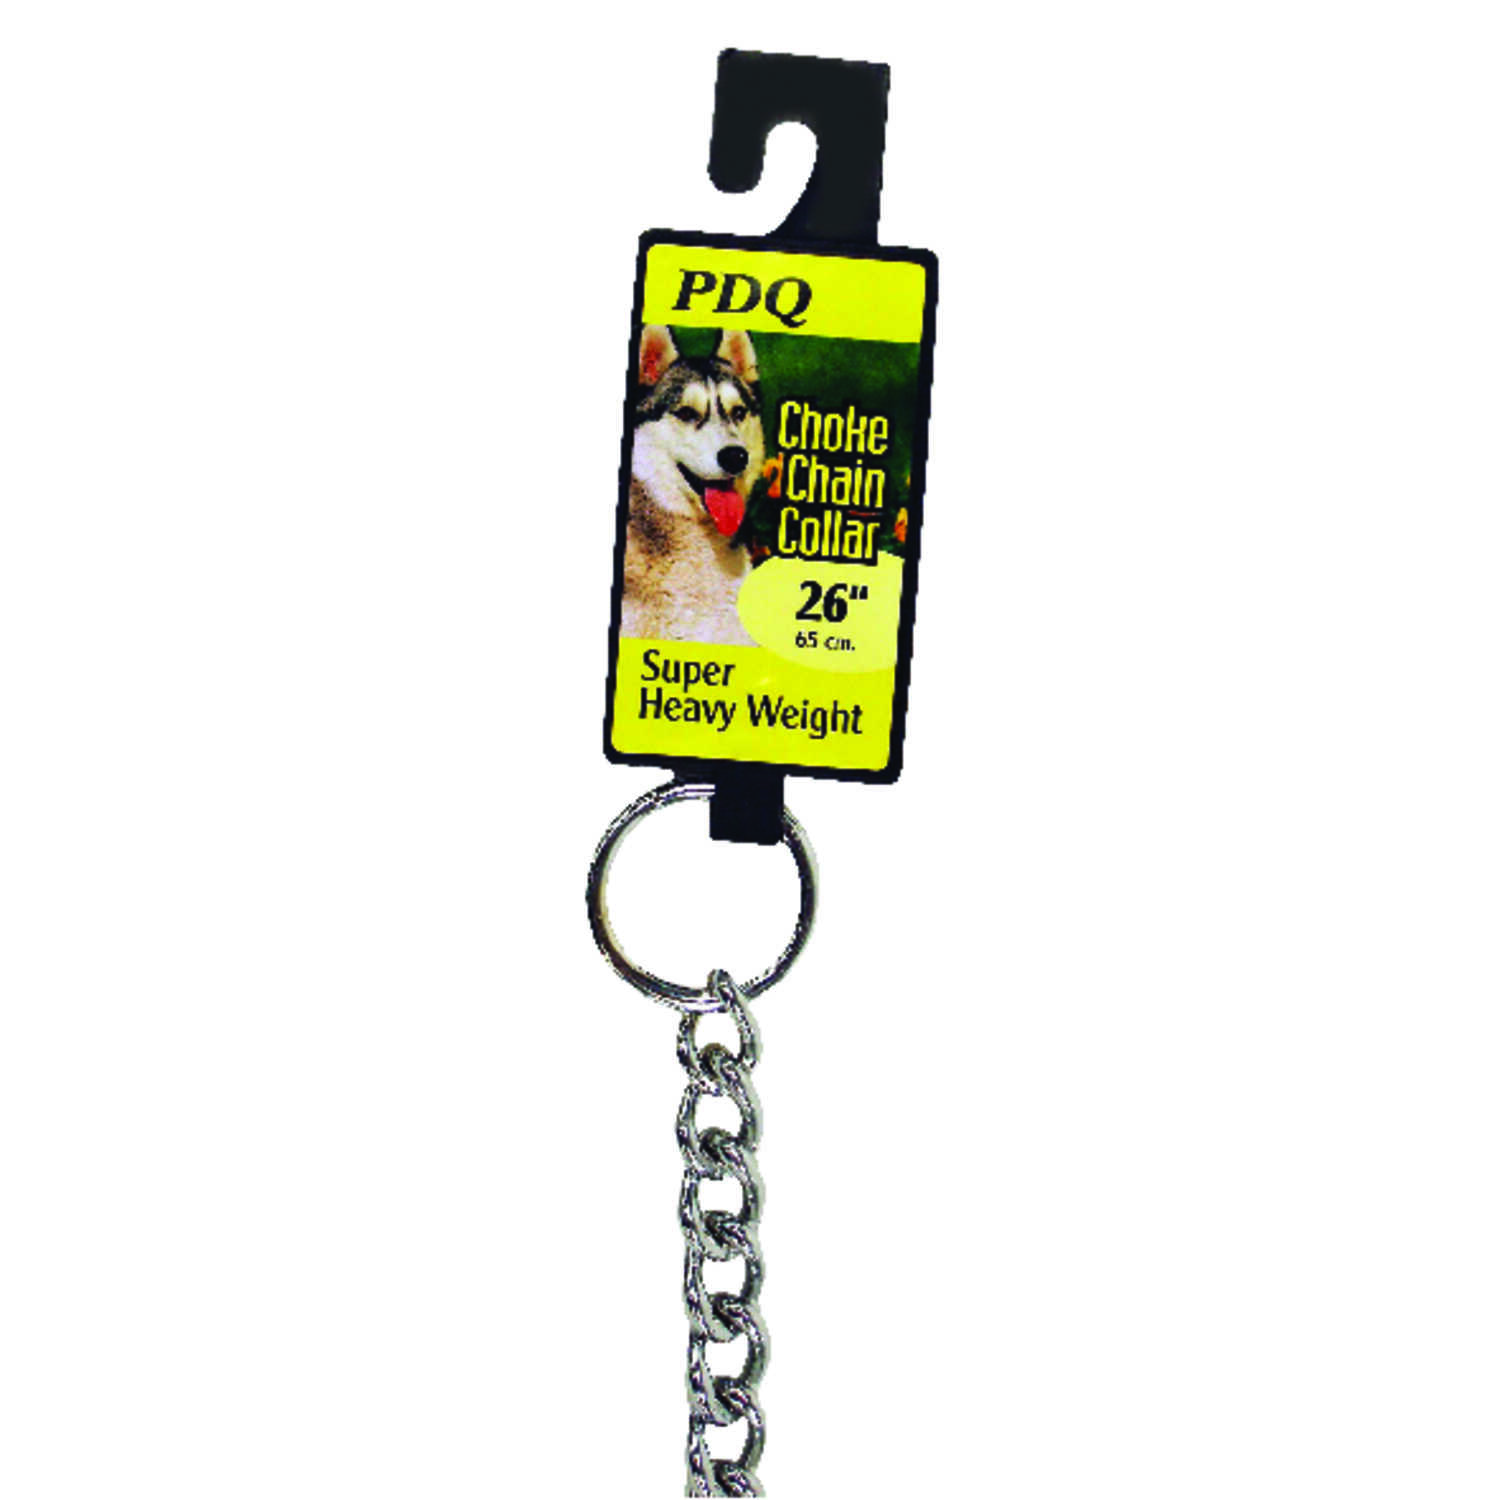 PDQ  Silver  Steel  Dog  Choke Chain Collar  Large/X-Large